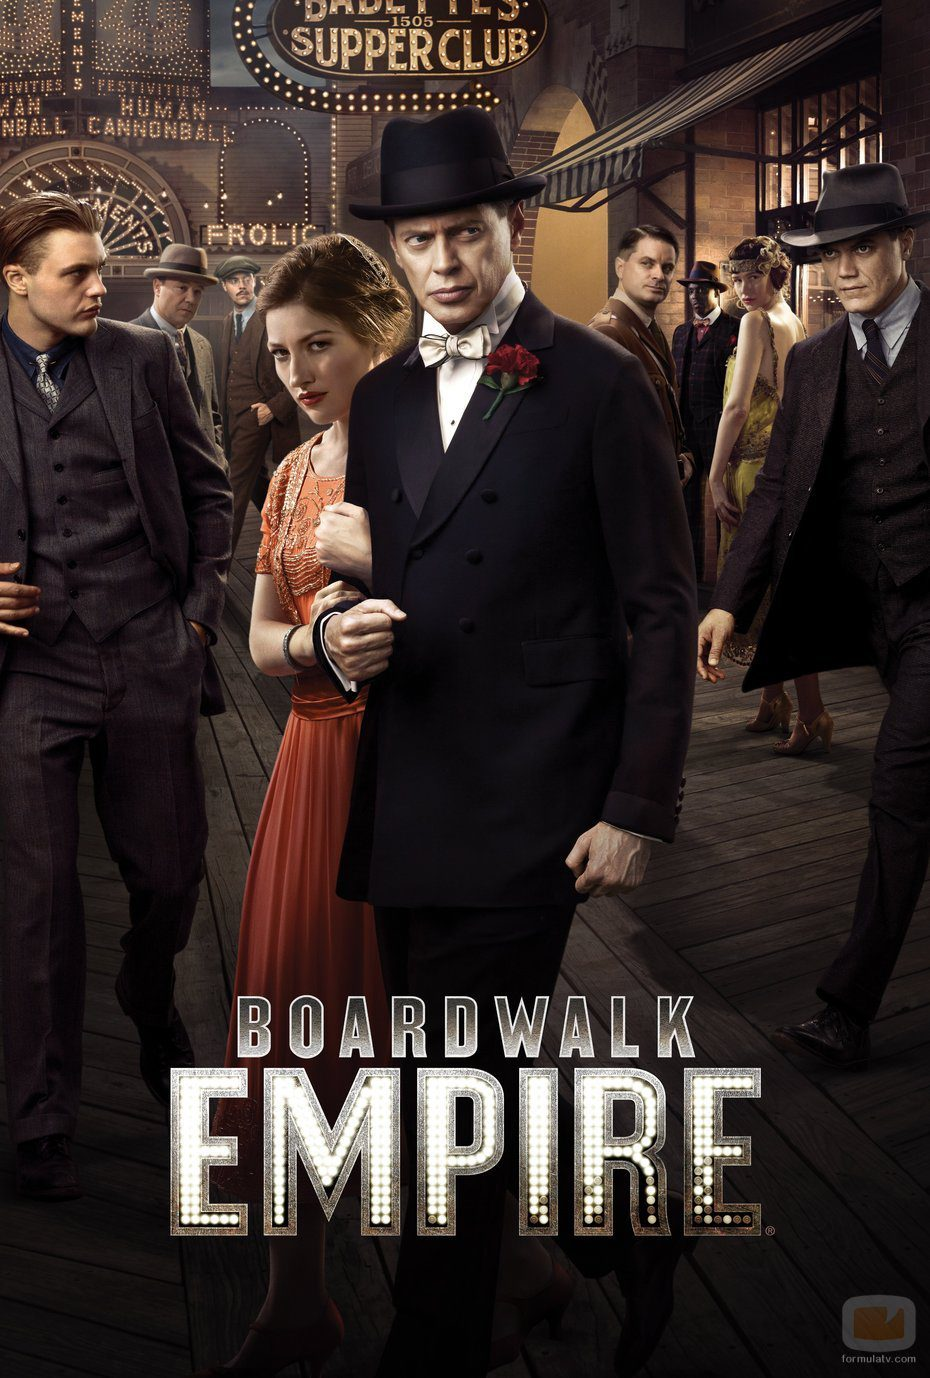 Póster promocional de 'Boardwalk Empire'